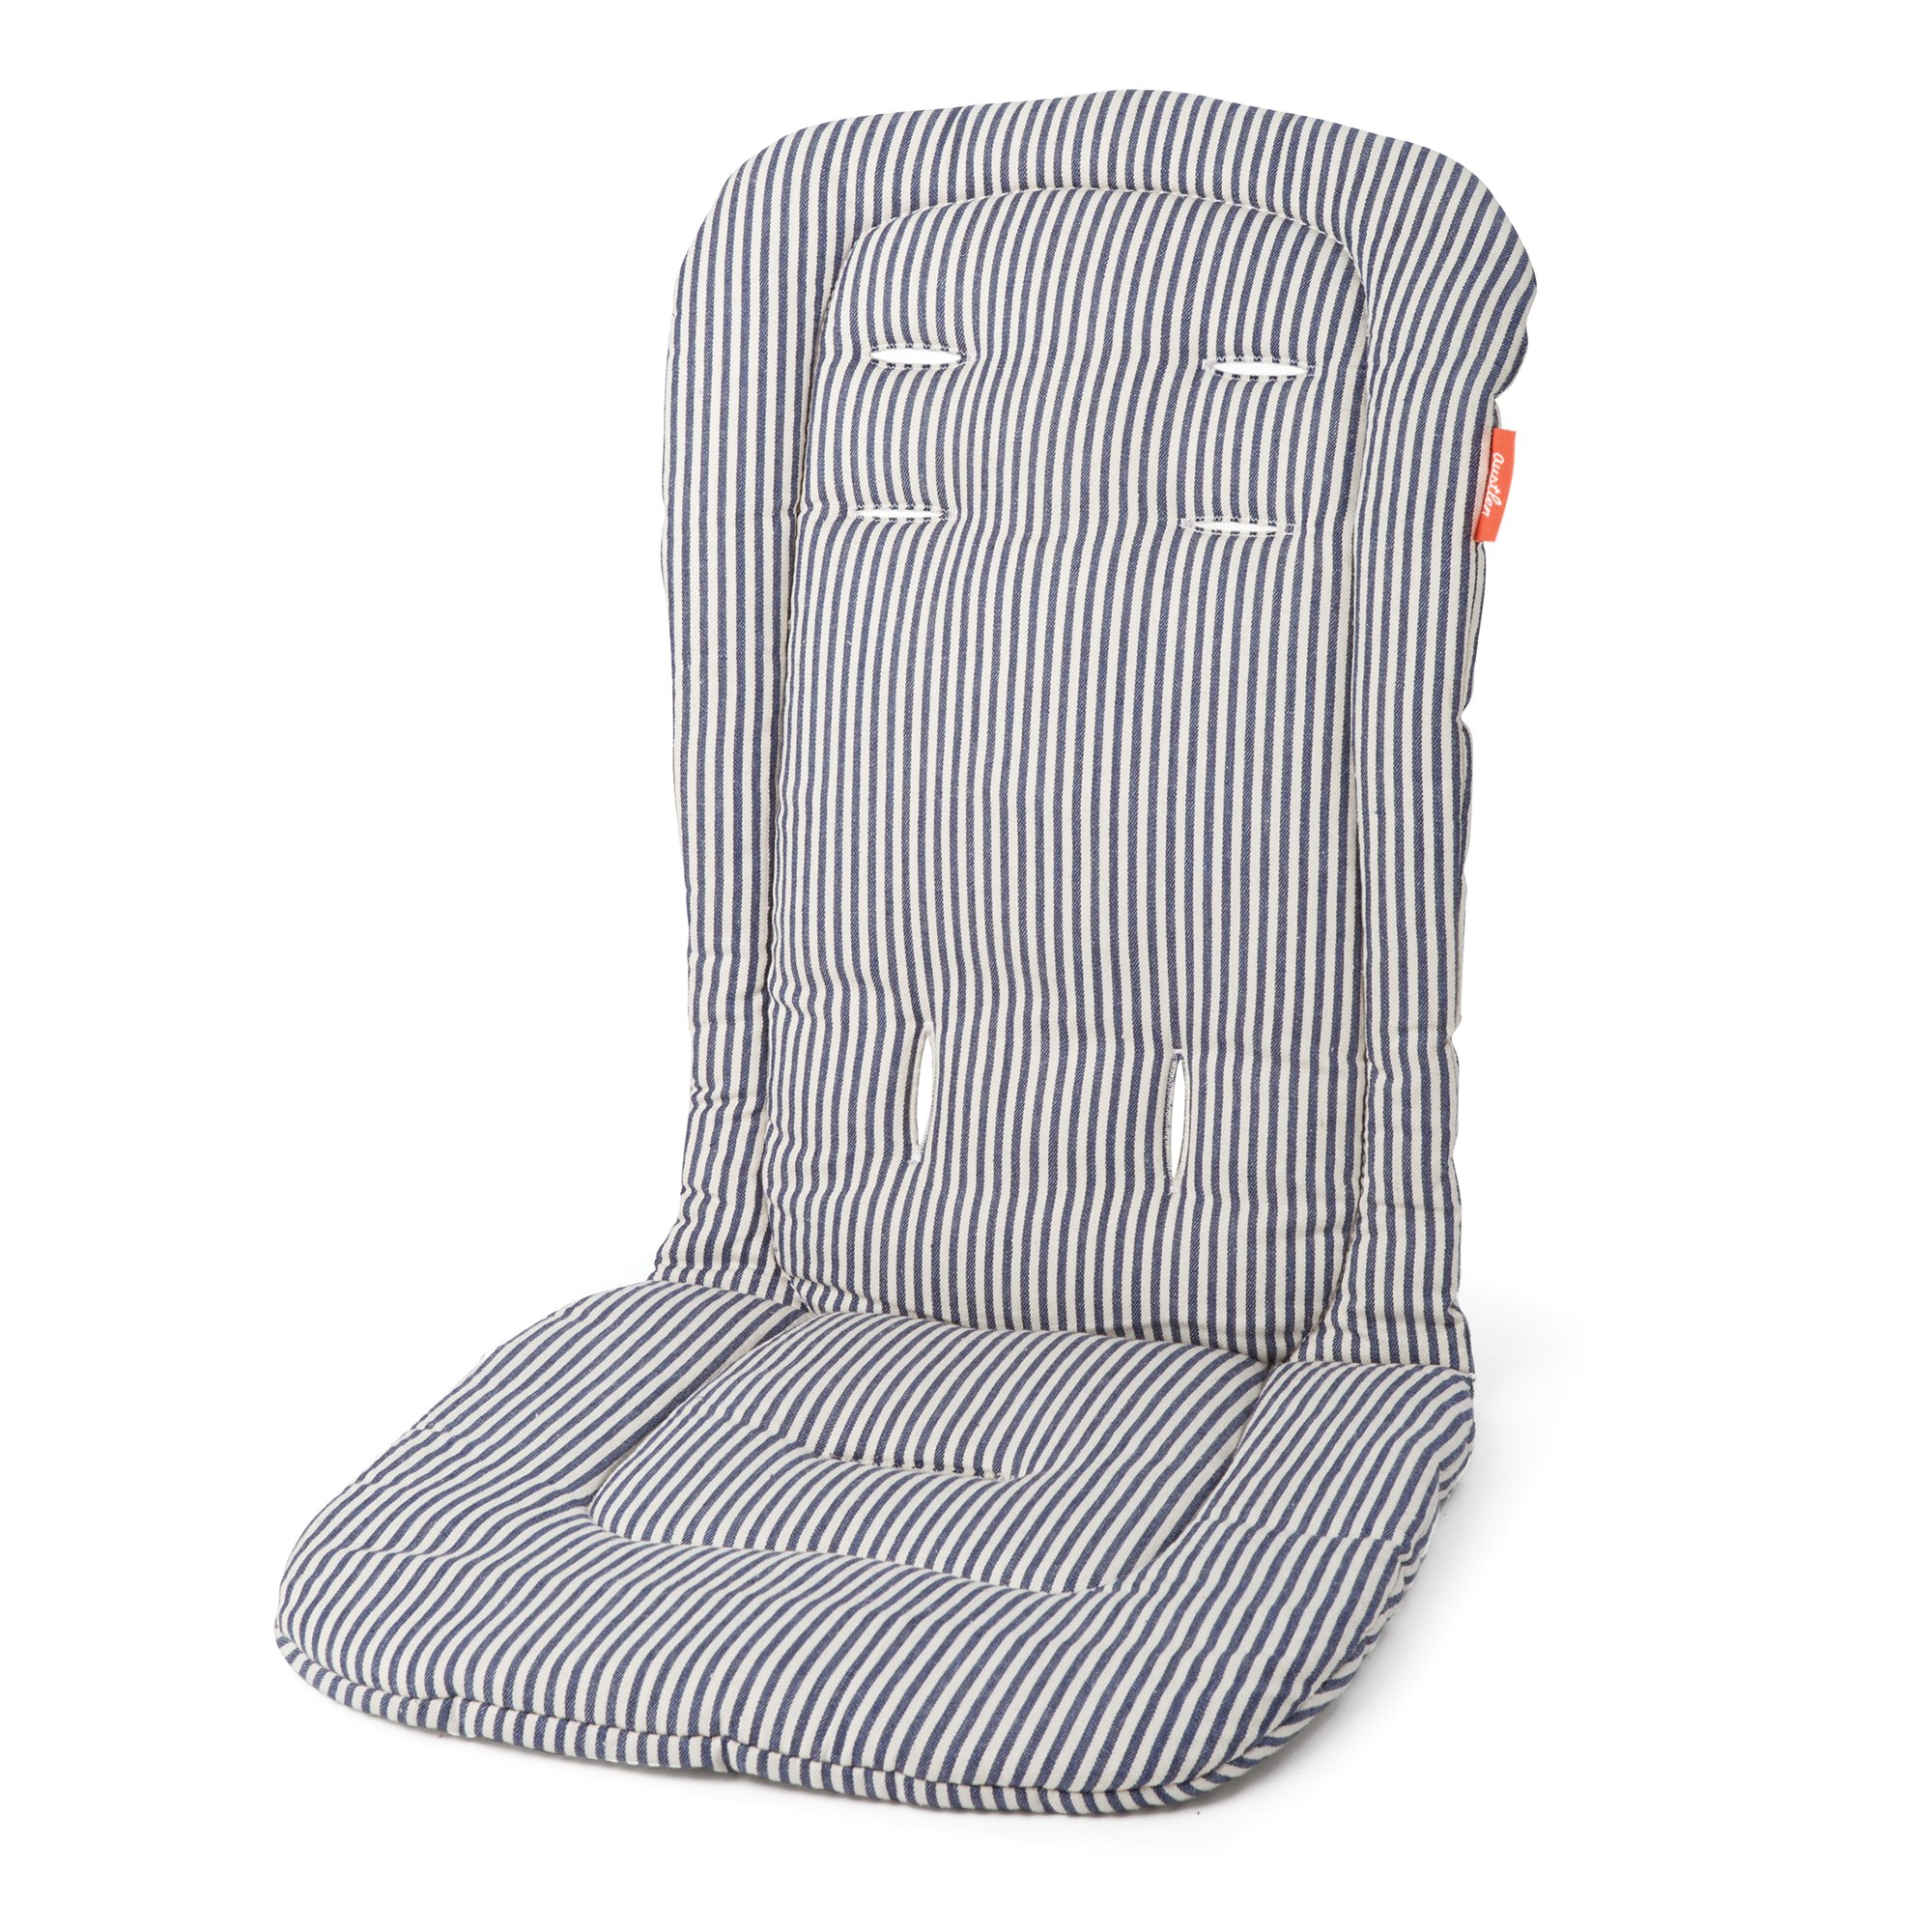 Austlen Baby Co. Entourage Second Seat Liner in Navy (also available in Black)